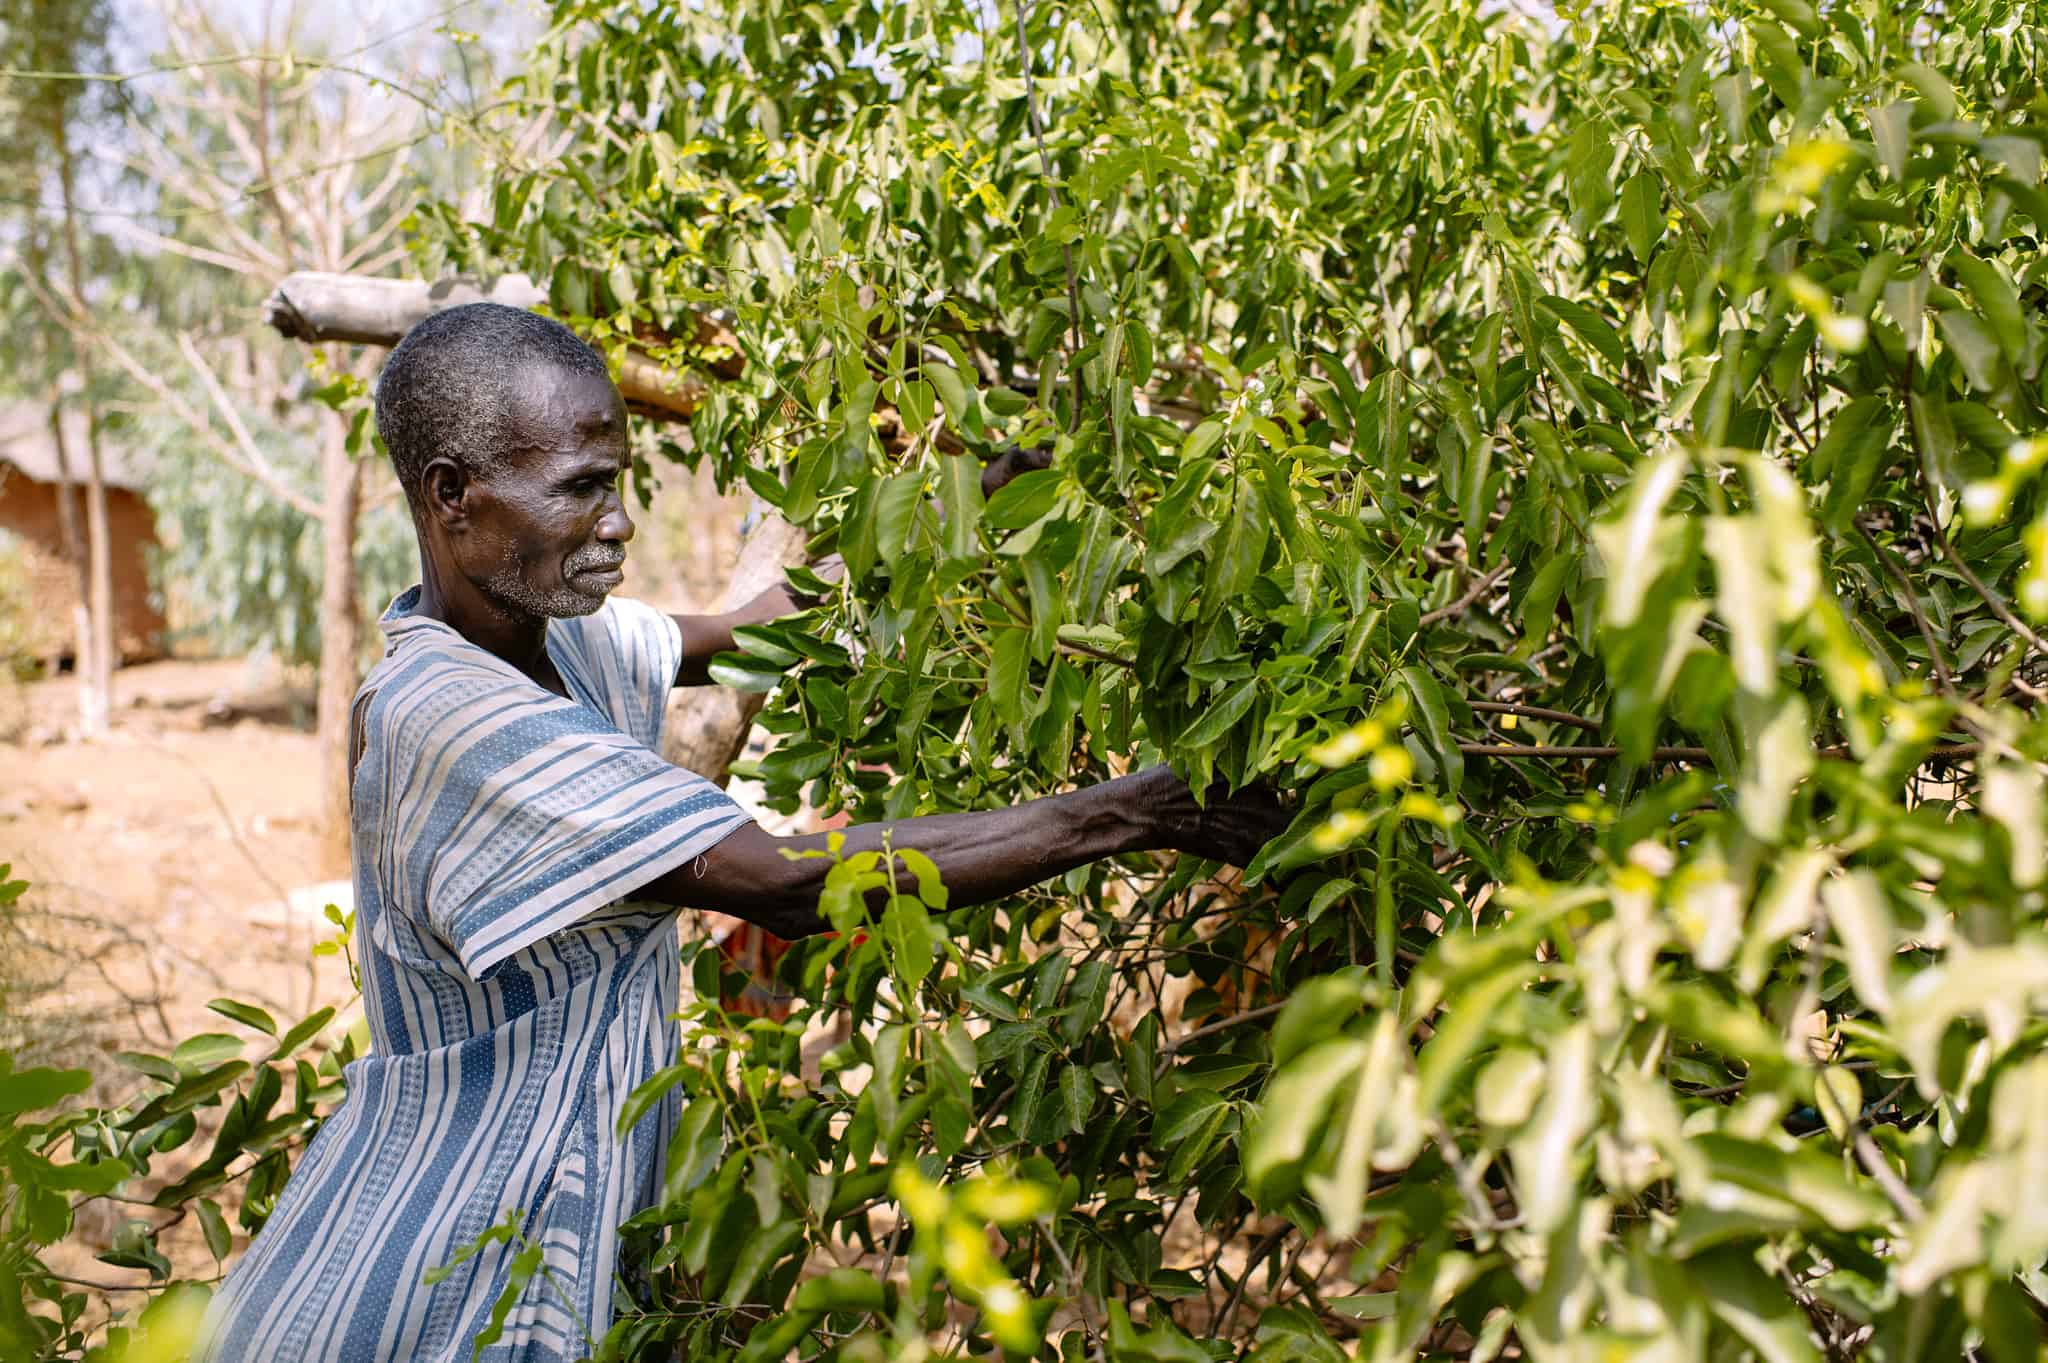 A farmer harvests fruit in Birou village, Burkina Faso. Photo by Ollivier Girard/CIFOR